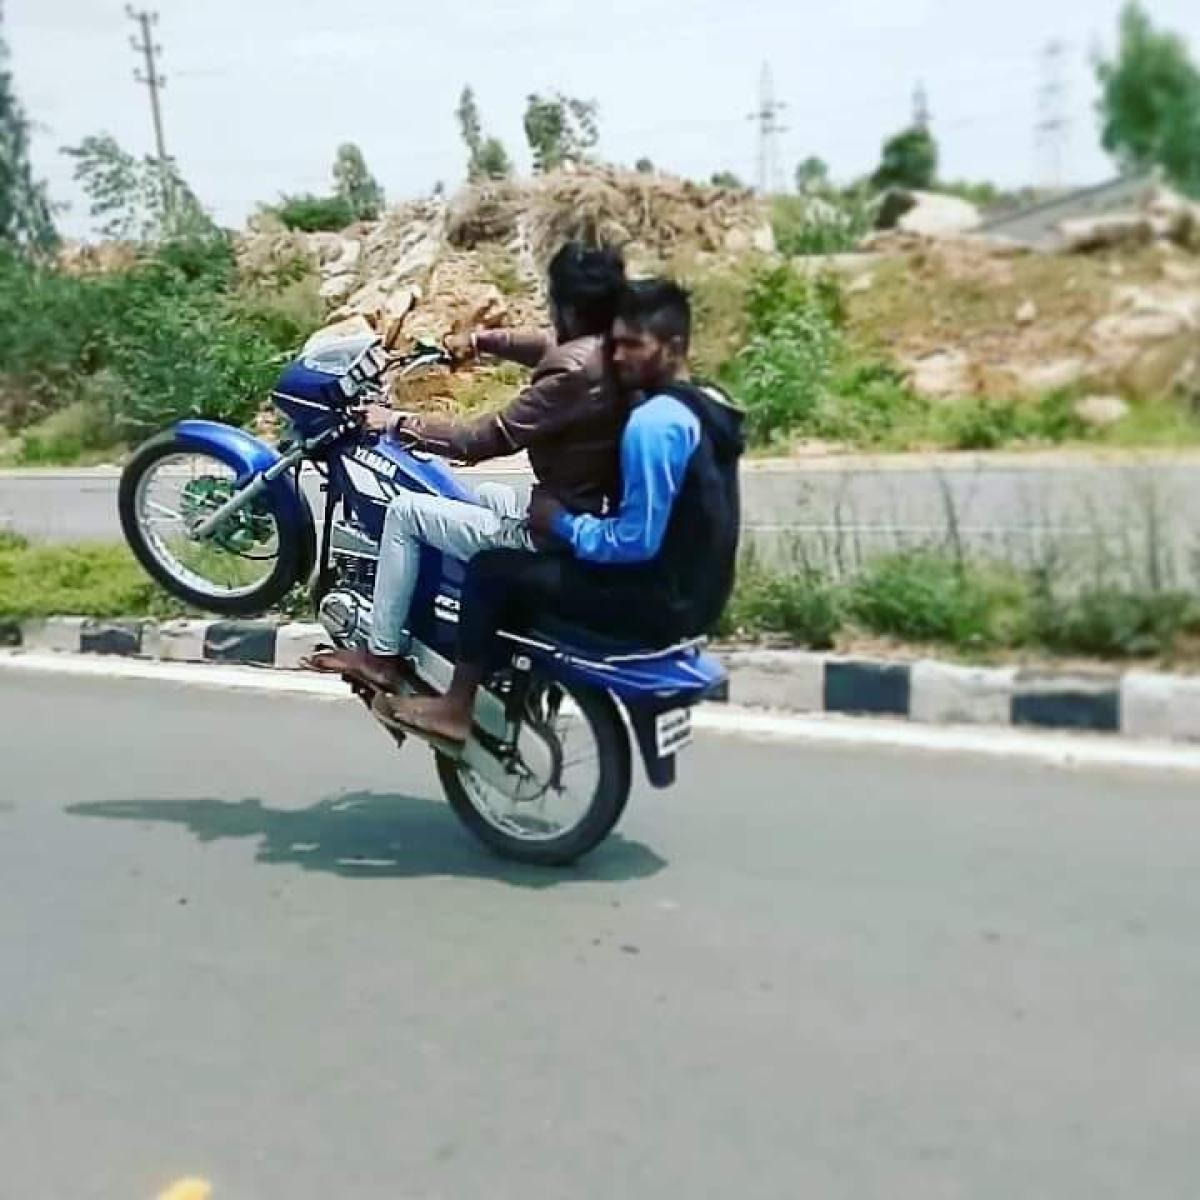 A rider doing a wheelie, as captured by his friend and posted on social media. POLICE HANDOUT